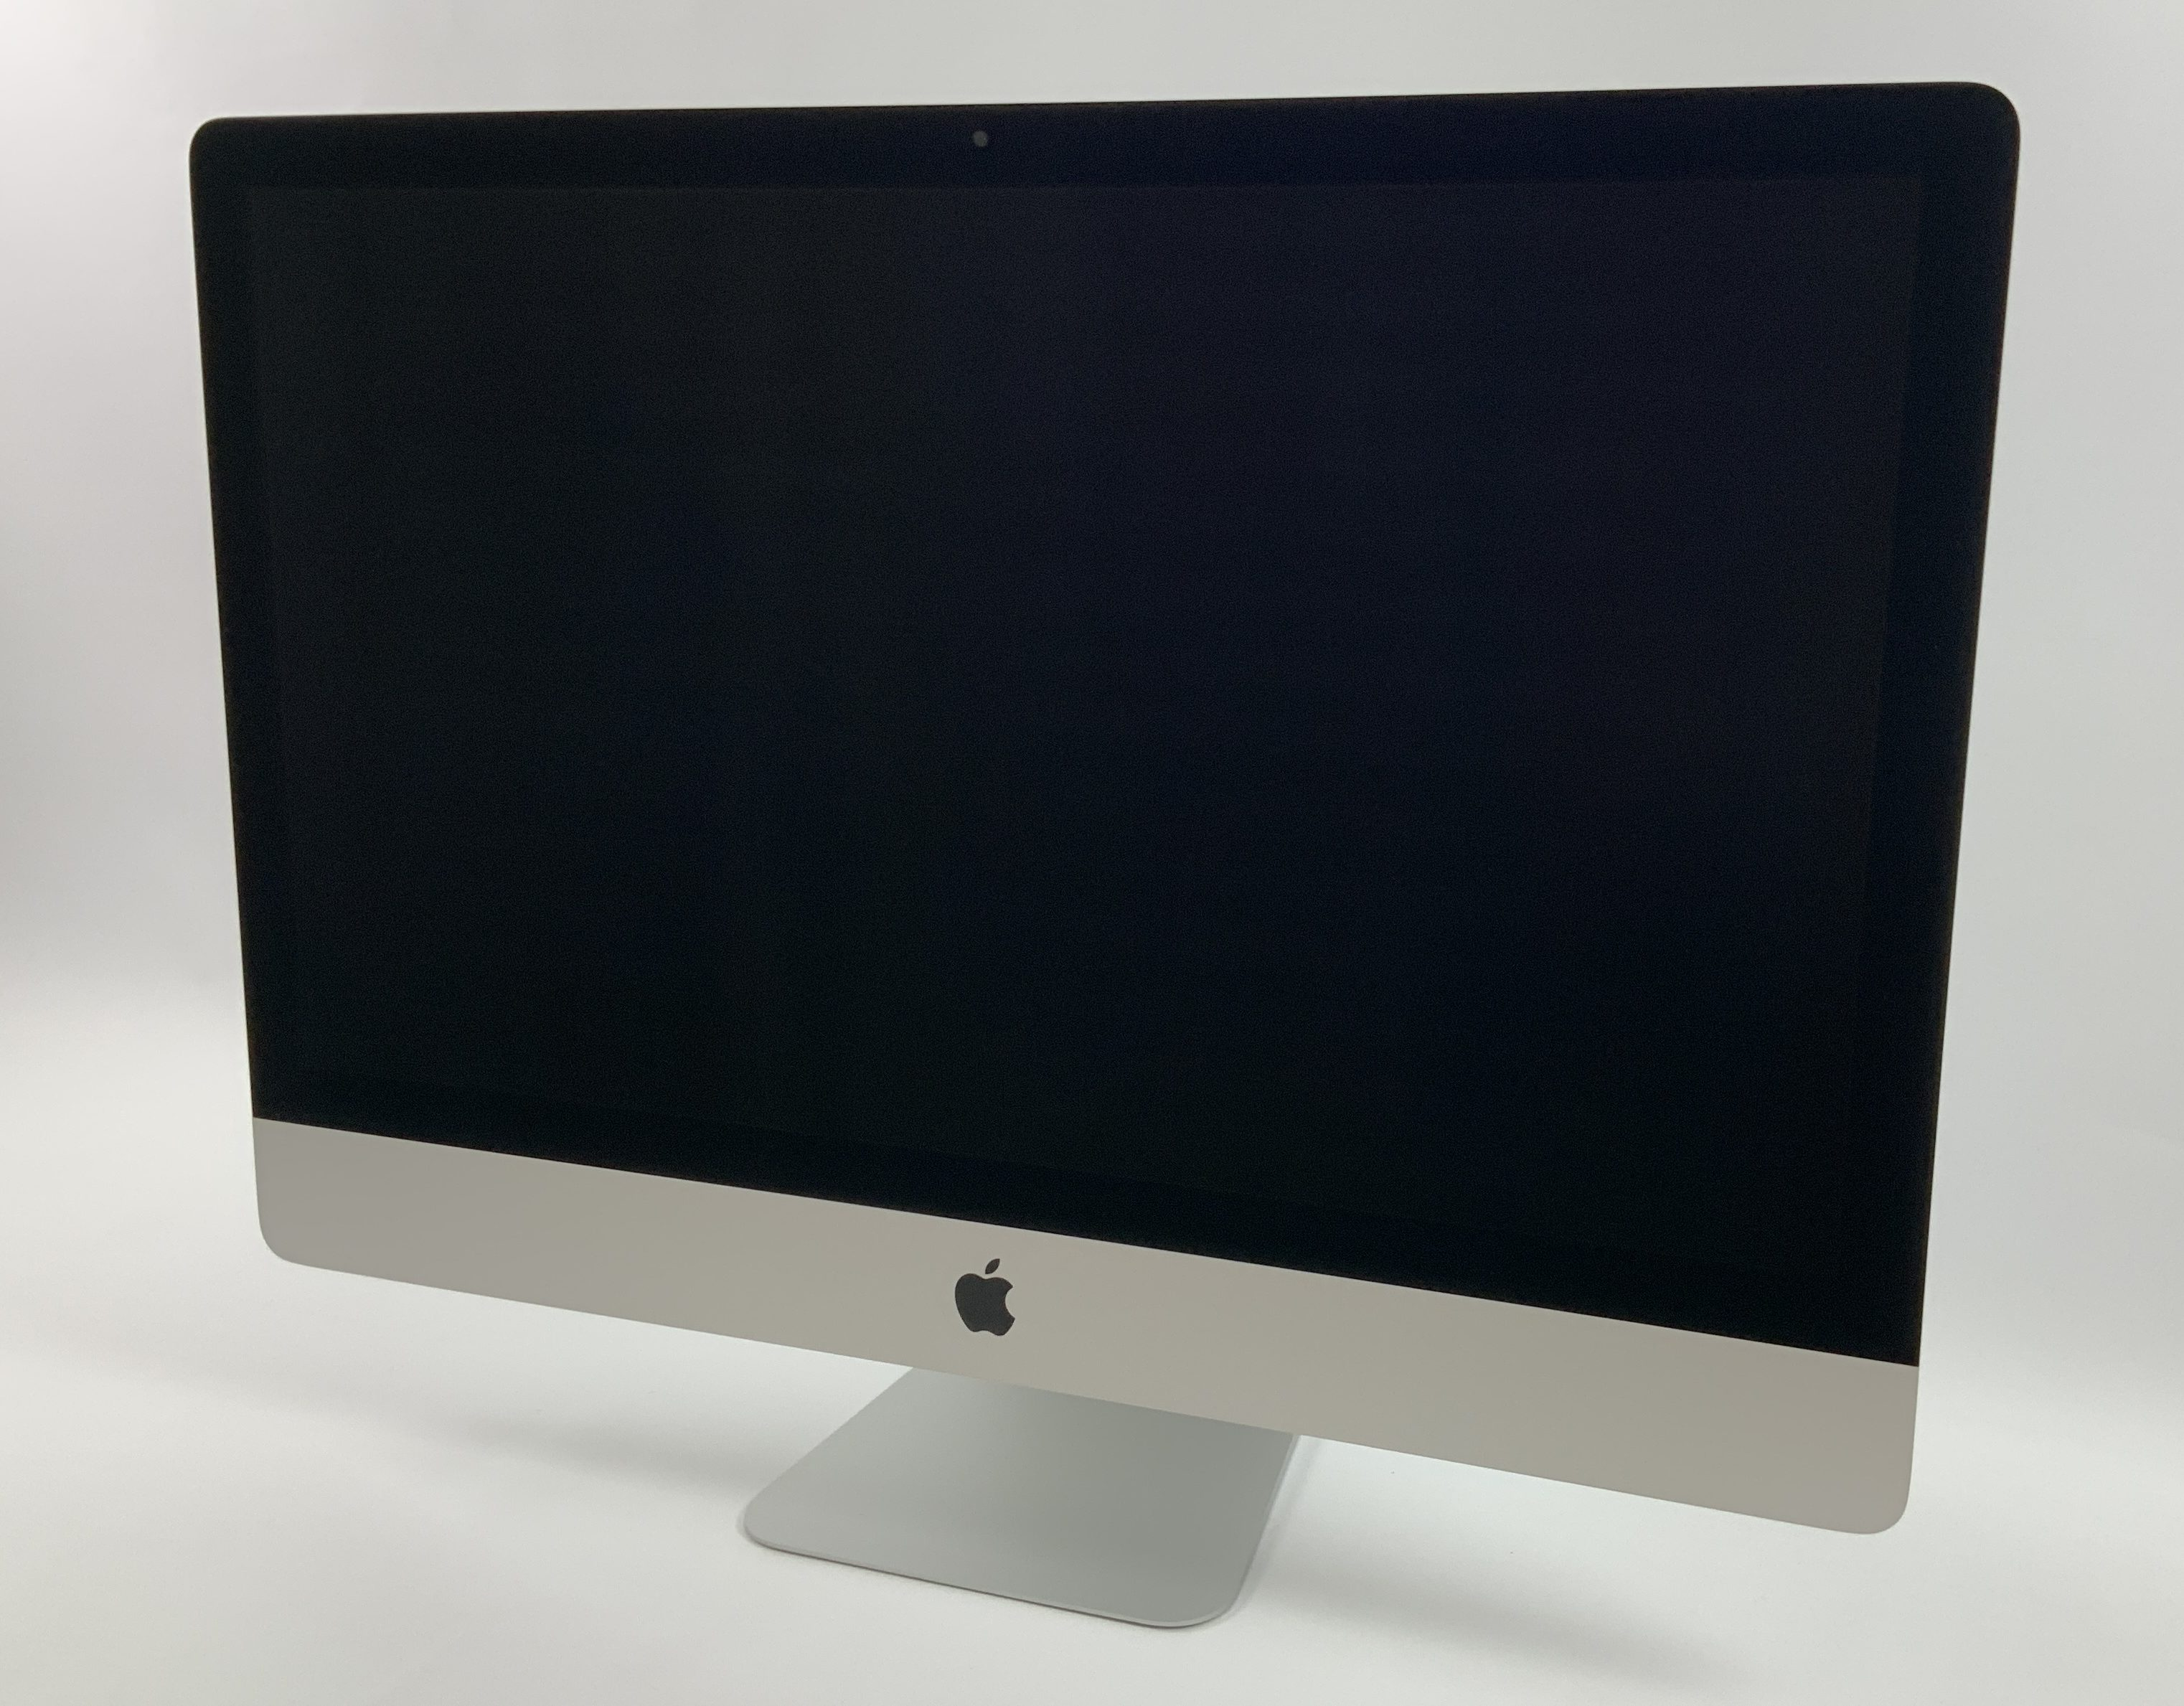 "iMac 27"" Retina 5K Late 2015 (Intel Quad-Core i5 3.2 GHz 8 GB RAM 1 TB HDD), Intel Quad-Core i5 3.2 GHz, 8 GB RAM, 1 TB HDD, Bild 1"